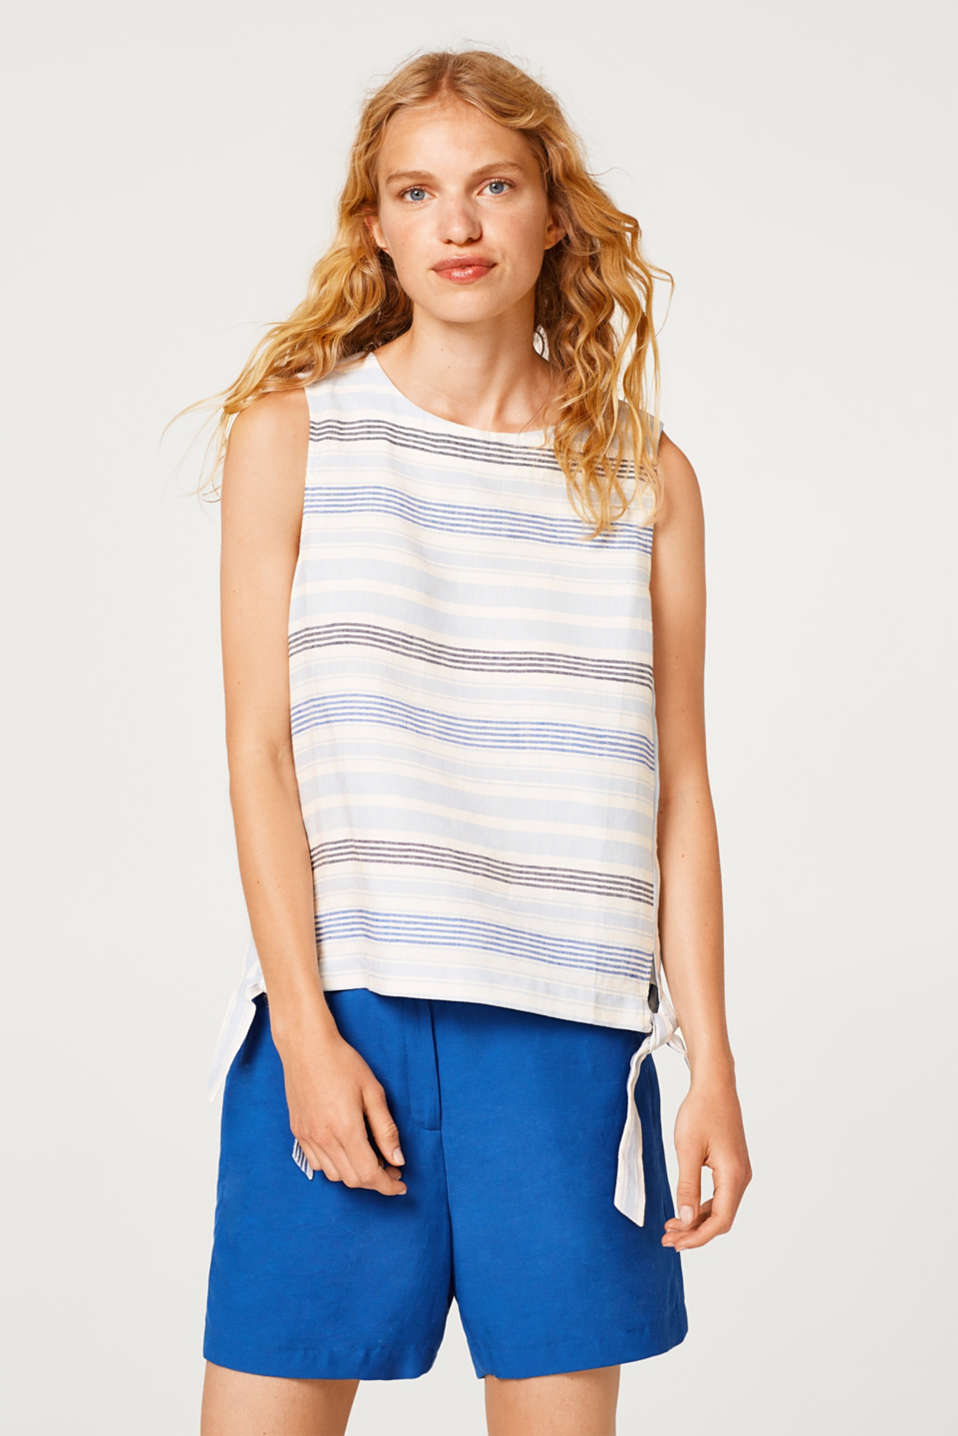 Esprit - Made of blended linen: blouse top with stripes